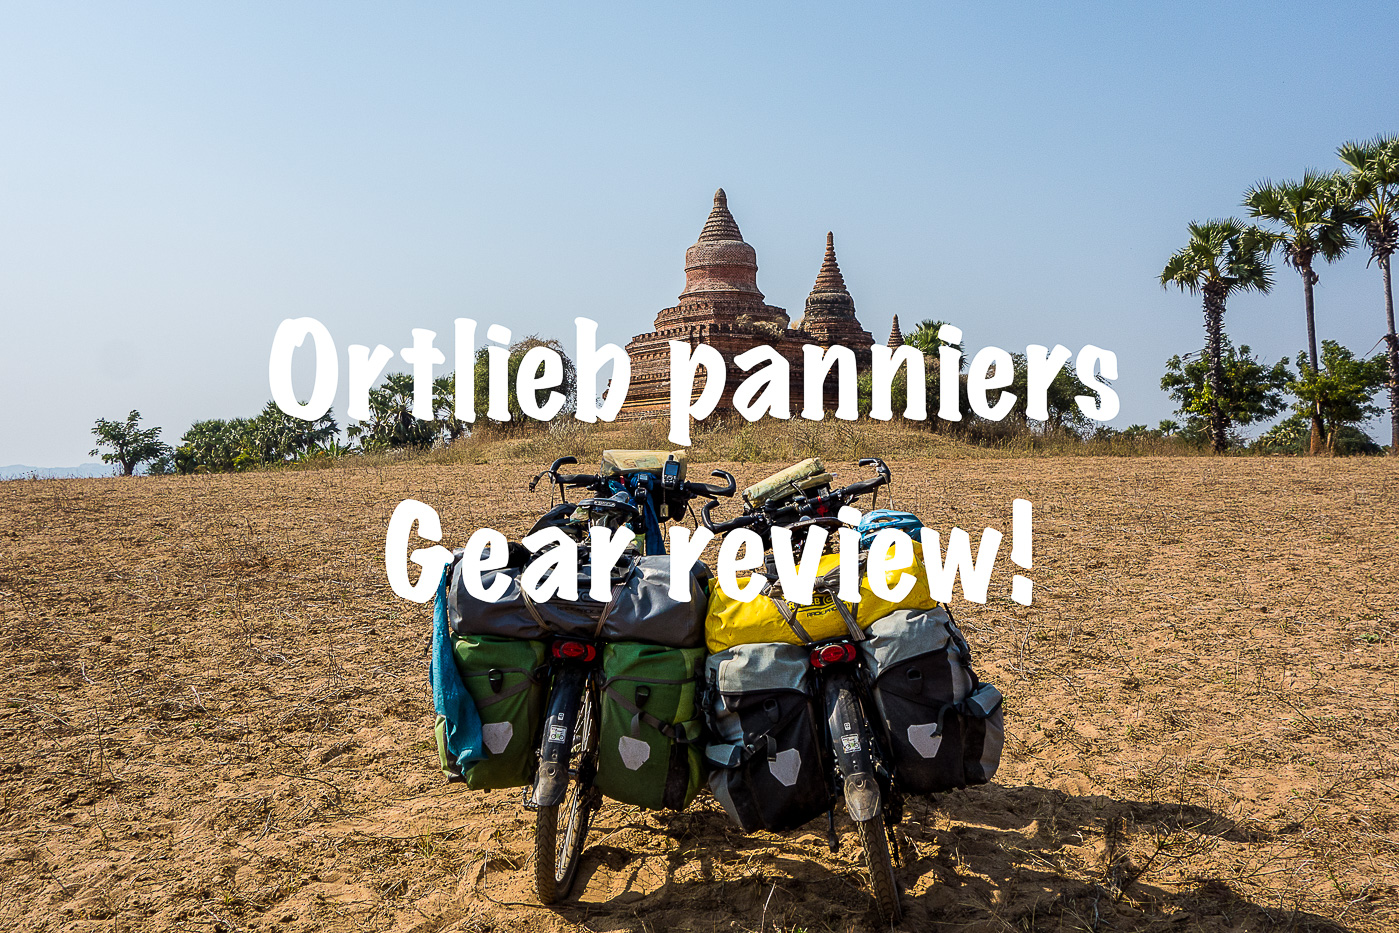 Review: Ortlieb panniers (Rear and Front)